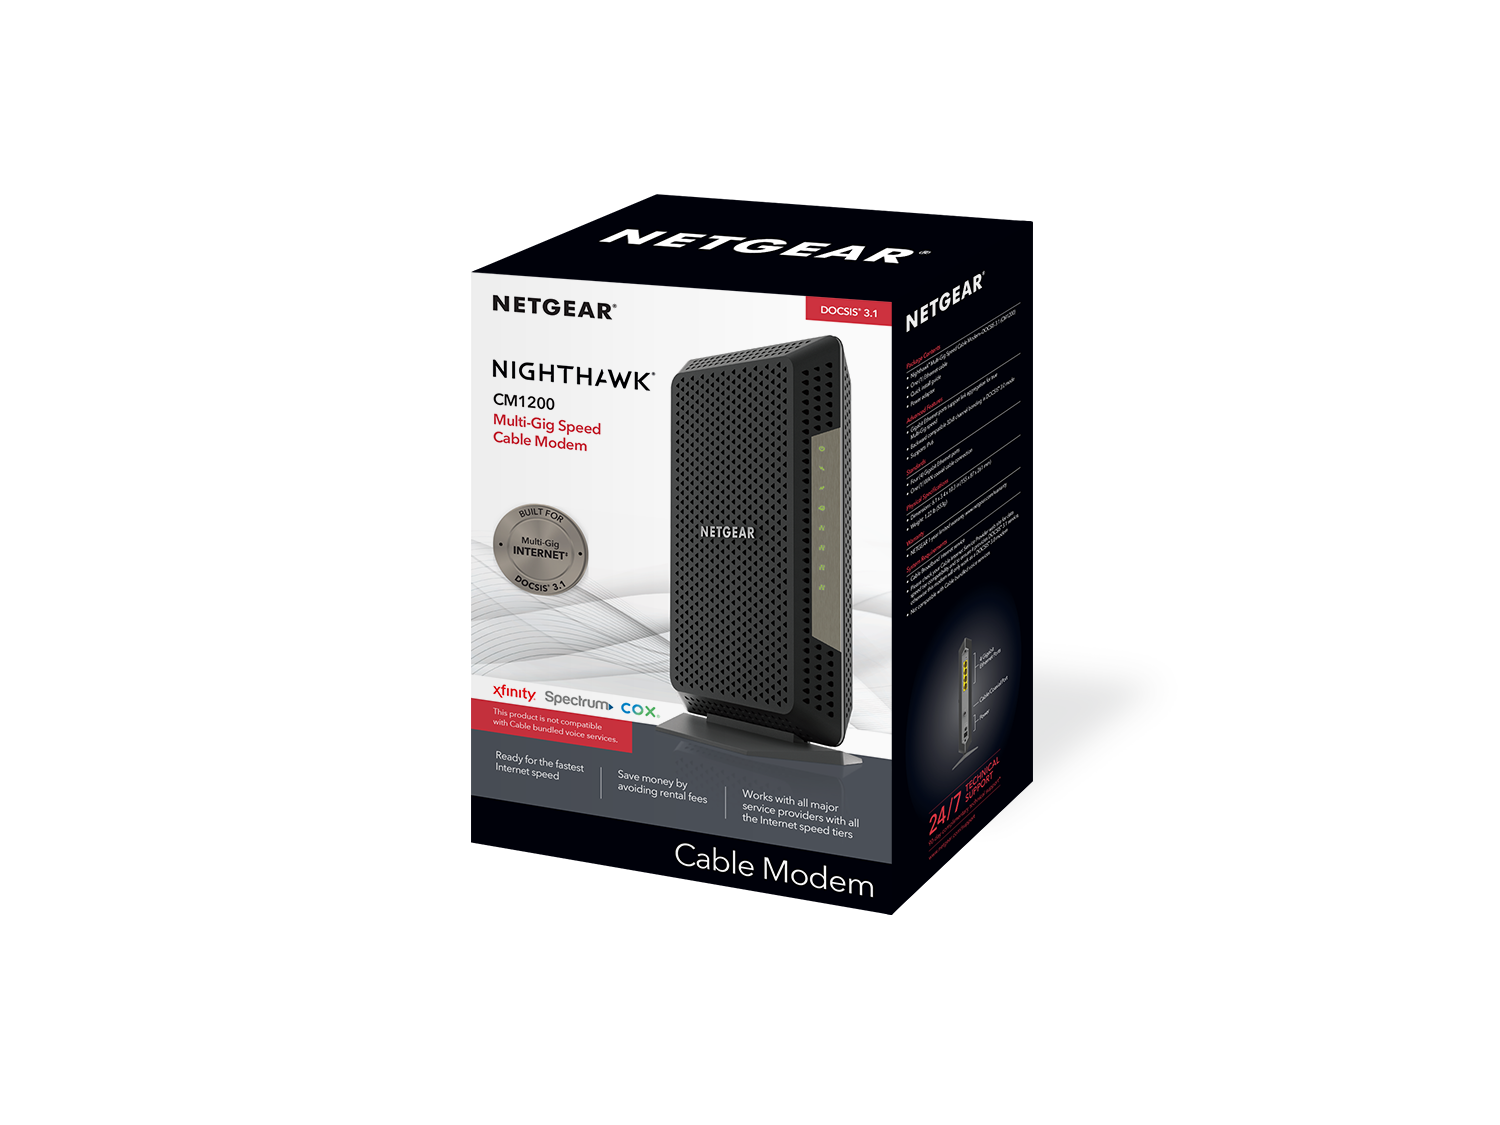 Cm1200 Cable Modems Amp Routers Networking Home Netgear